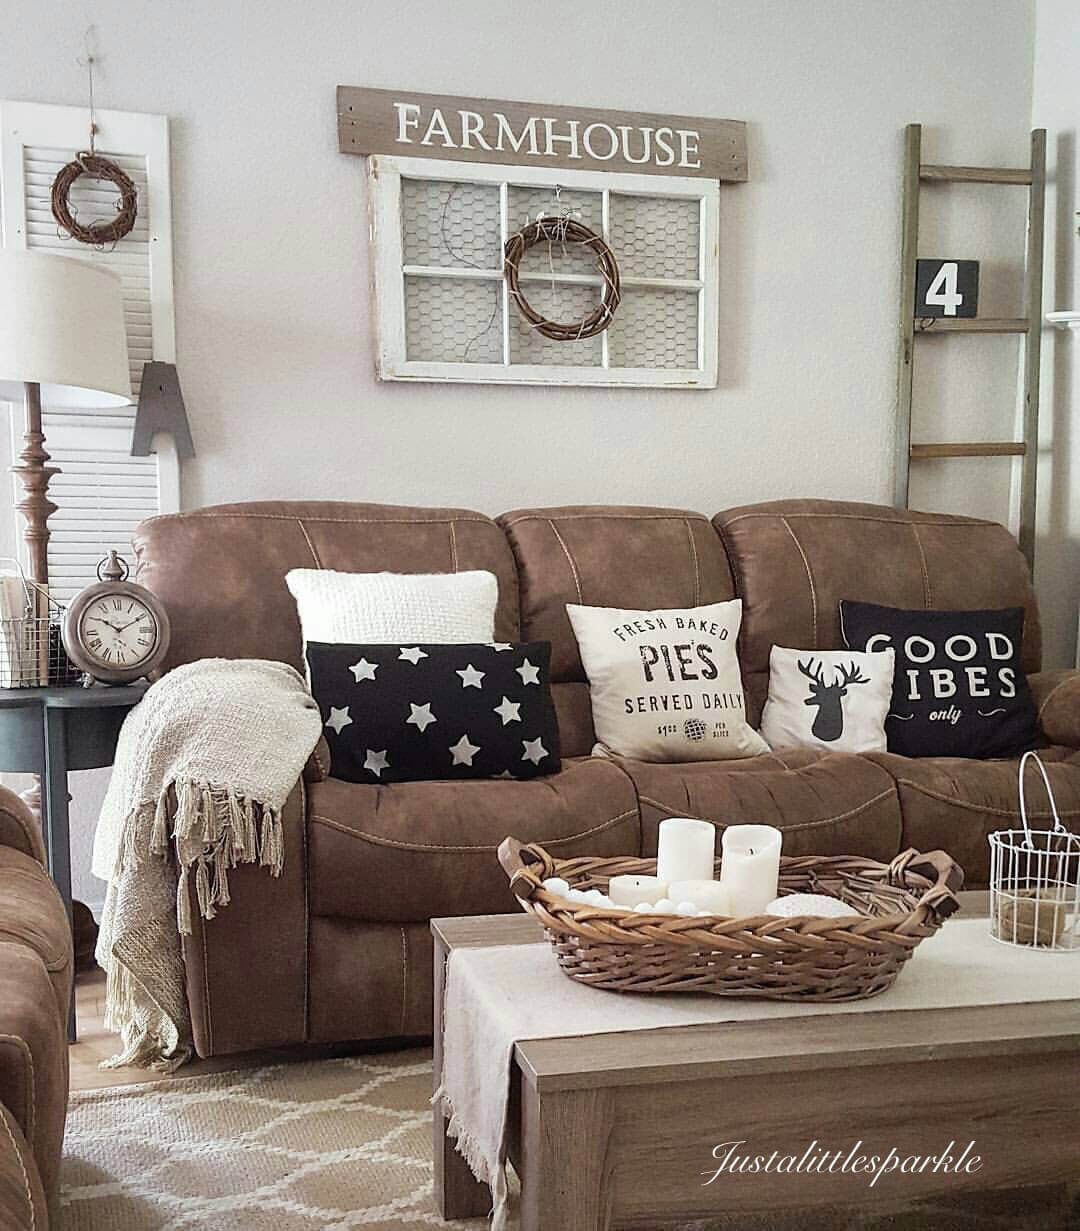 35 Rustic Farmhouse Living Room Design And Decor Ideas For Your